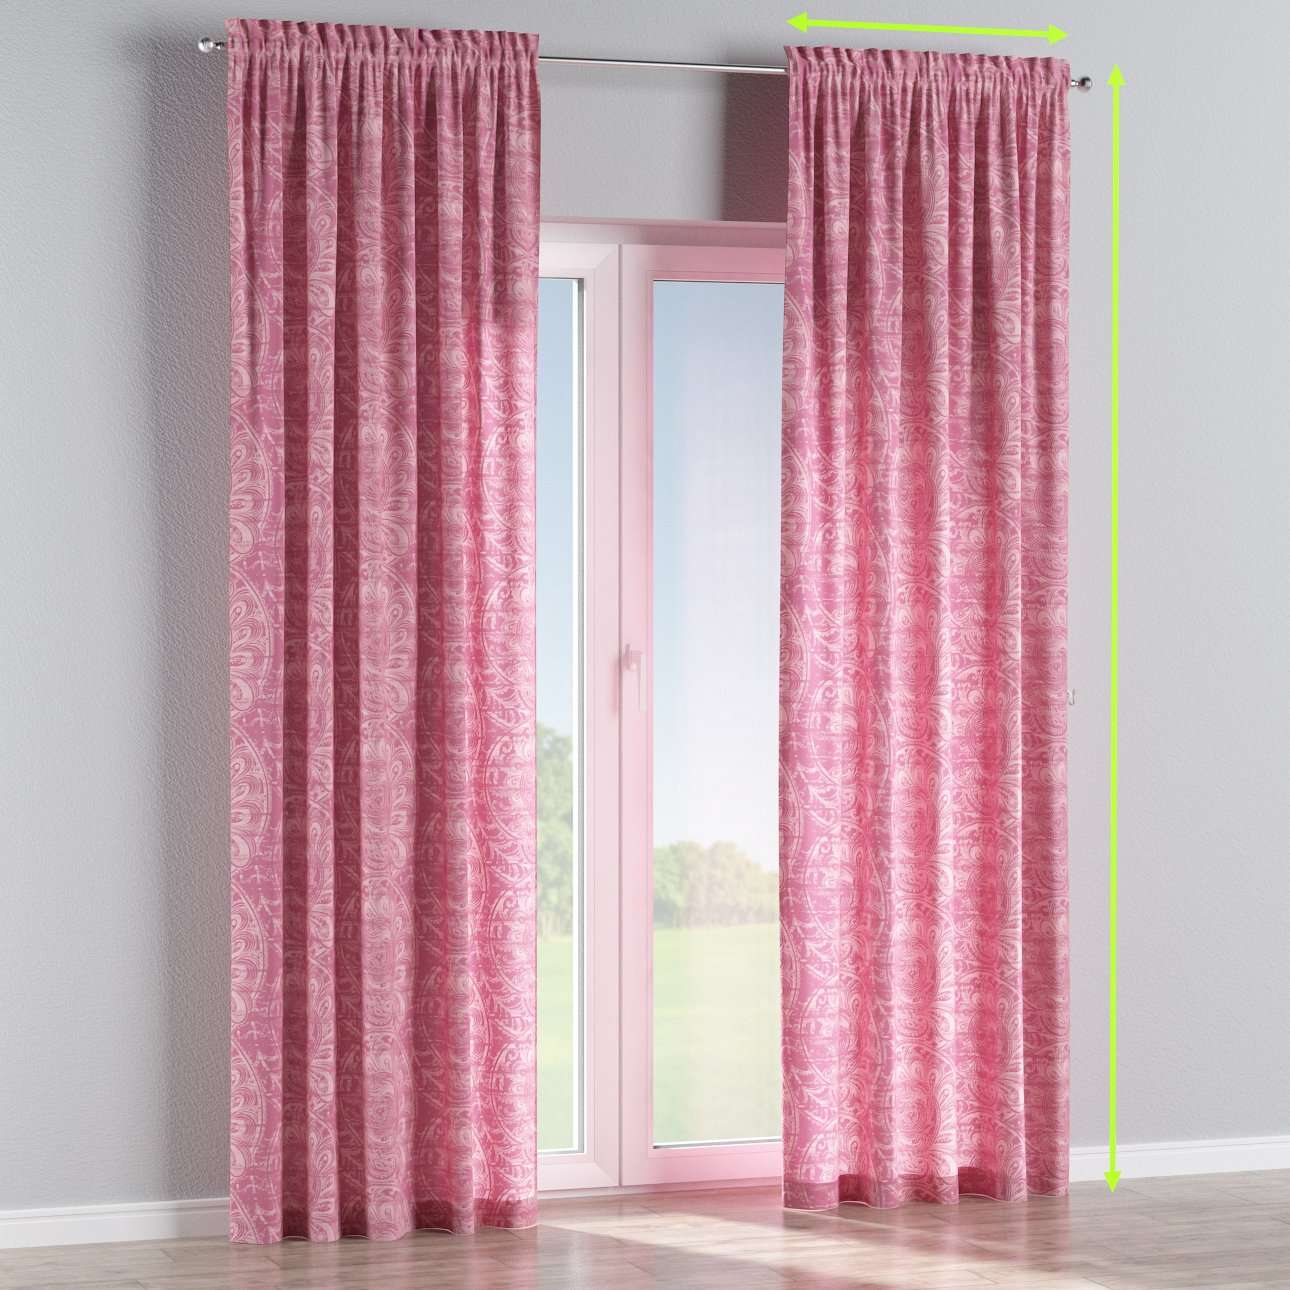 Slot and frill curtains in collection Mirella, fabric: 143-07